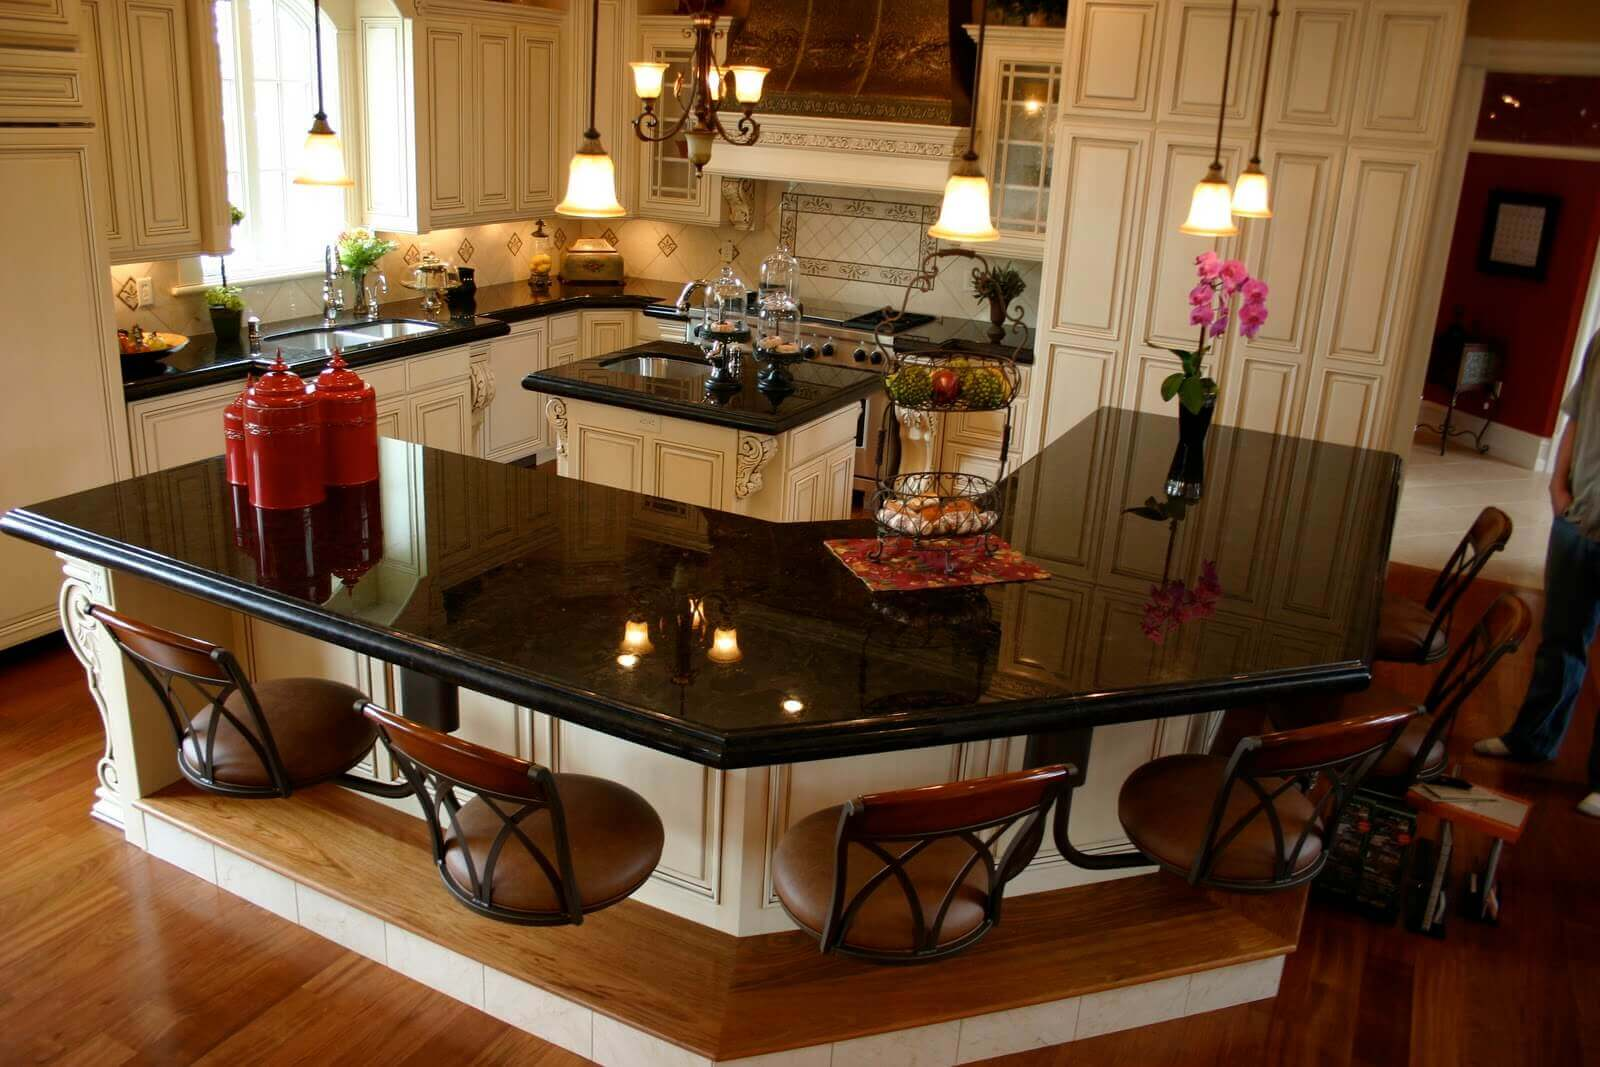 Kitchen Island Knee Space 68+deluxe custom kitchen island ideas (jaw dropping designs)